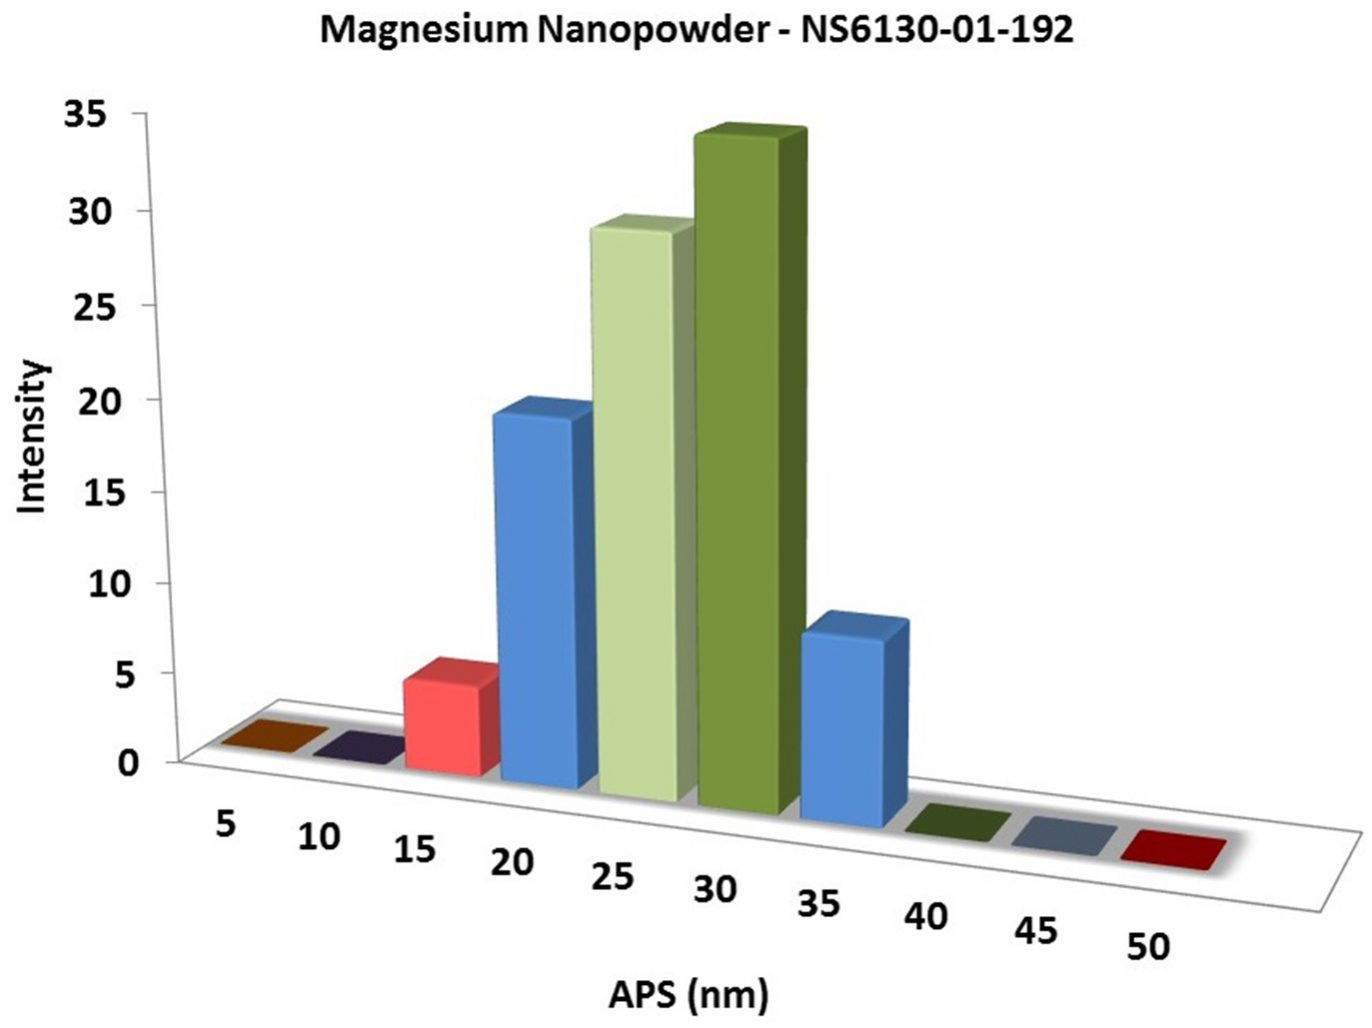 Particles Size Analysis - Mg Nanoparticles